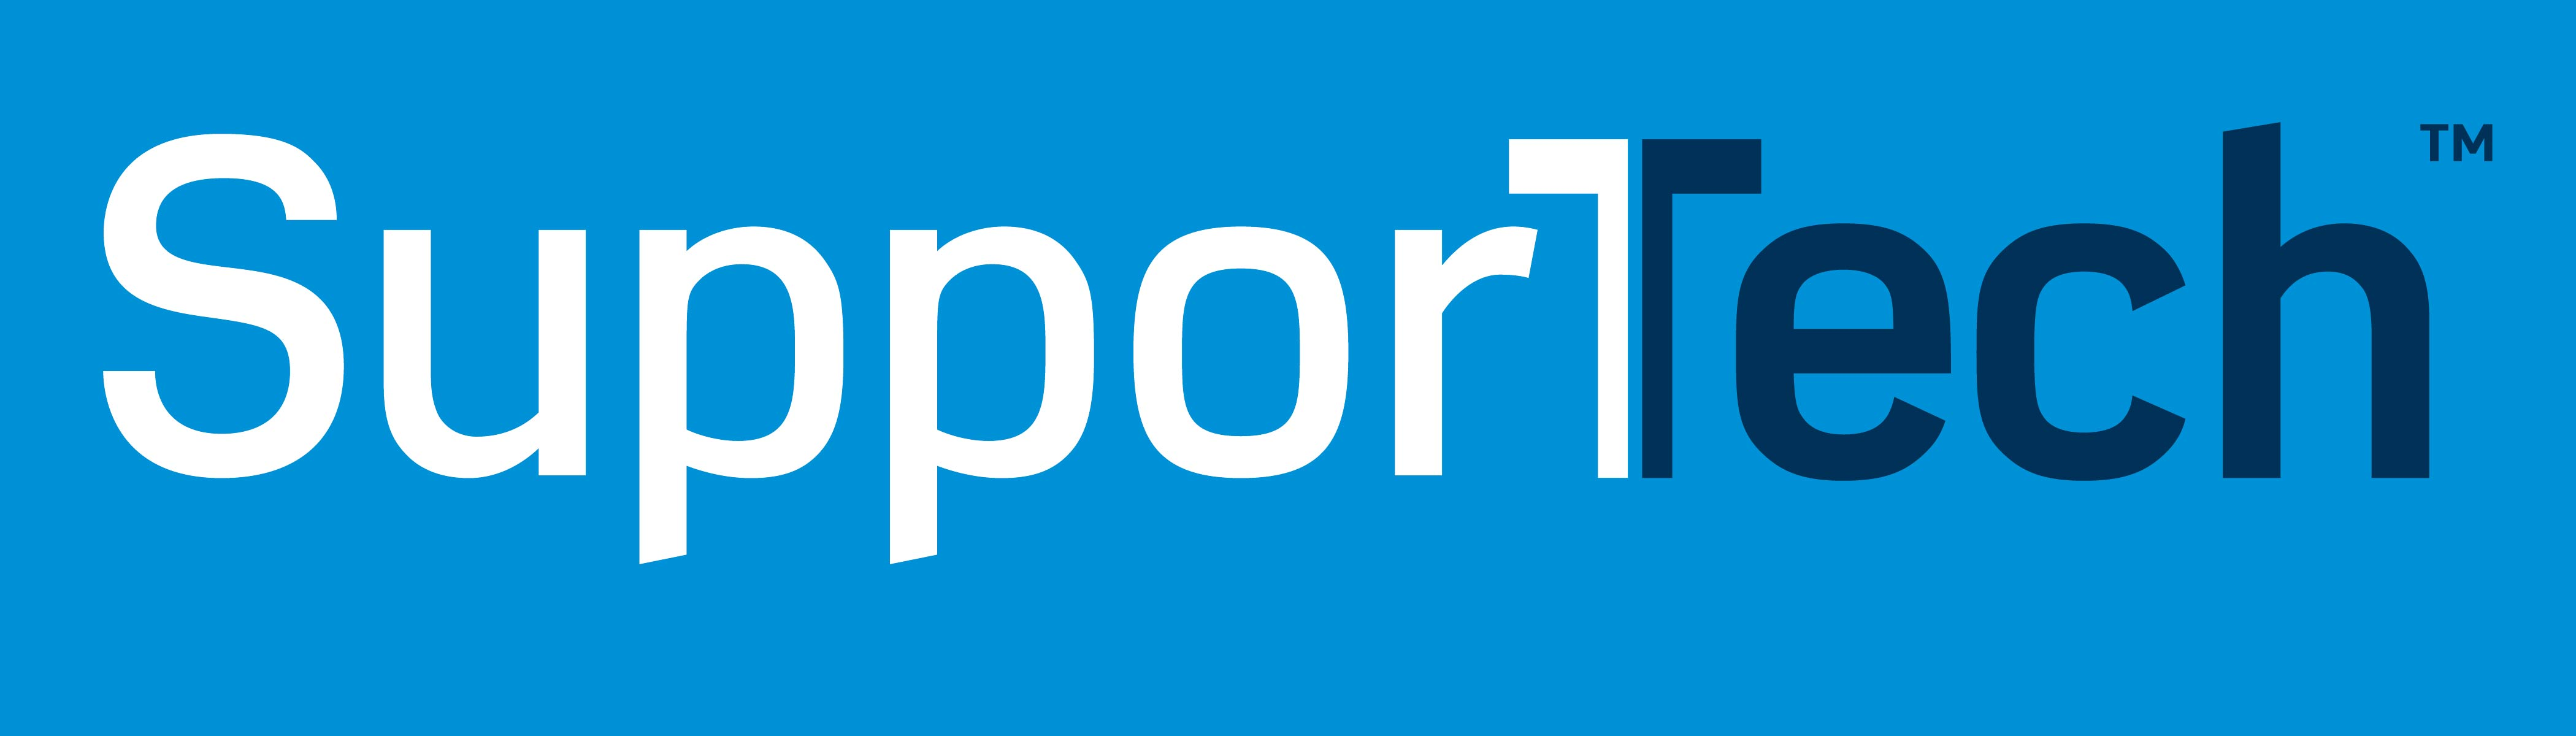 SupporTech_Logo